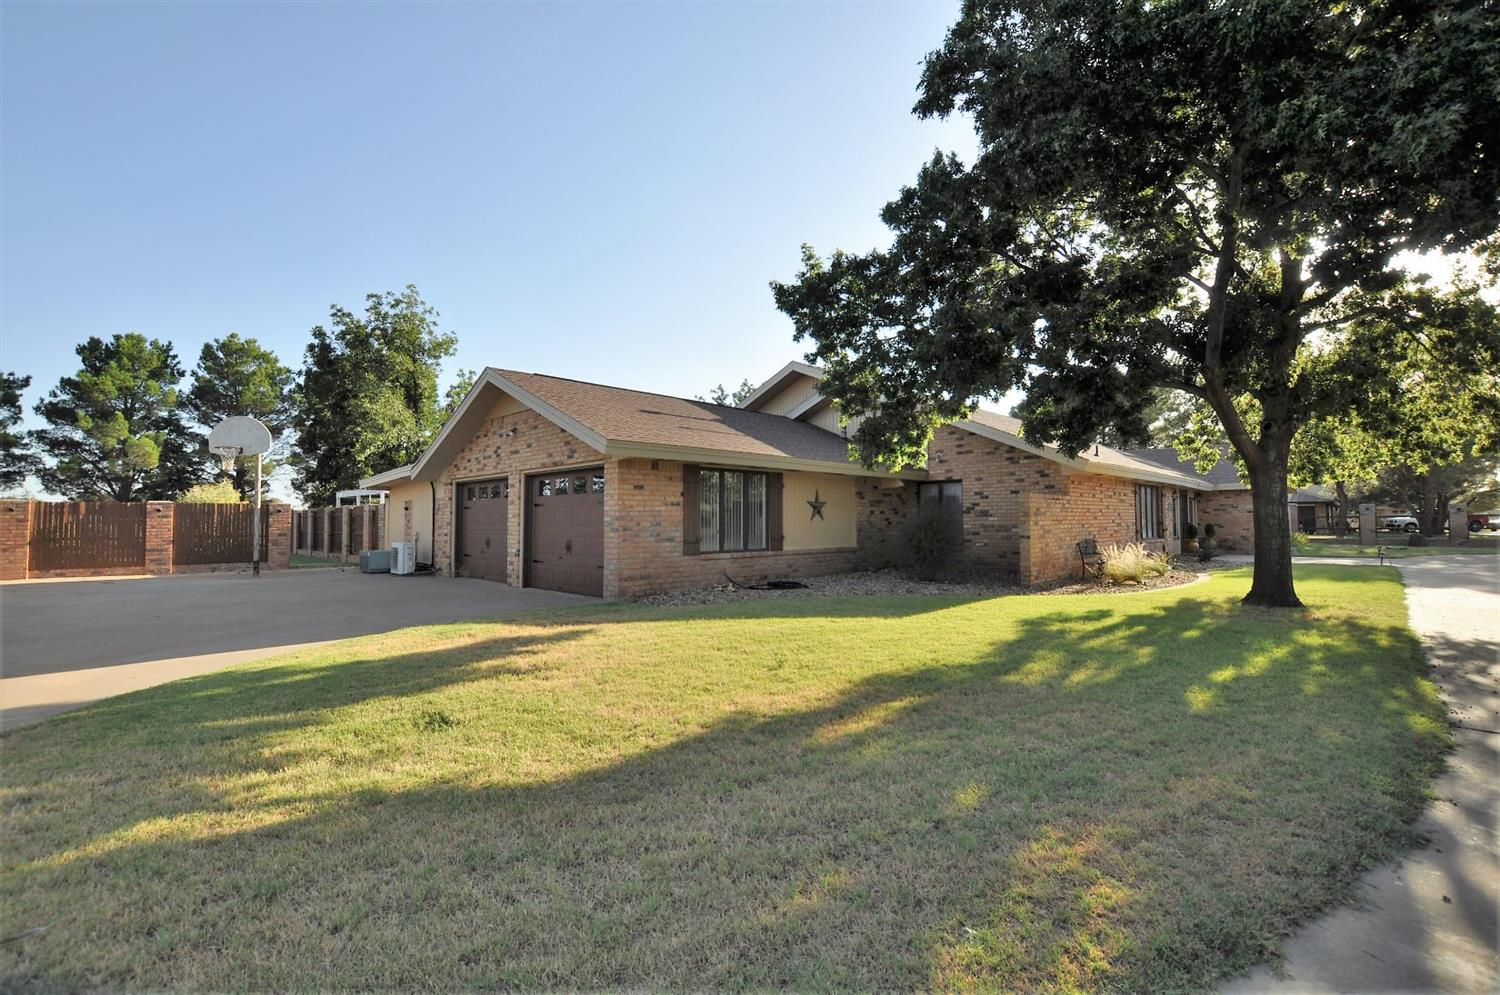 Beautiful remodeled 4054 sf. home features, 3 bedrooms, 2 1/2 bathrooms, 2 dining areas, office, huge basement, large 25 X 50 shop with 2 overhead doors (large enough to store big camper), dumping station on one acre of land in Levelland. Kitchen features, granite counter tops, dishwasher, garbage disposal, trash compactor, built in rangetop, microwave and oven. Backyard is fenced and has an awesome pool recently installed, covered porch, mature trees, nice shed and sprinkler system. Lot of parking area including RV or trailer parking. This home is a must see! Call today to schedule your private tour.